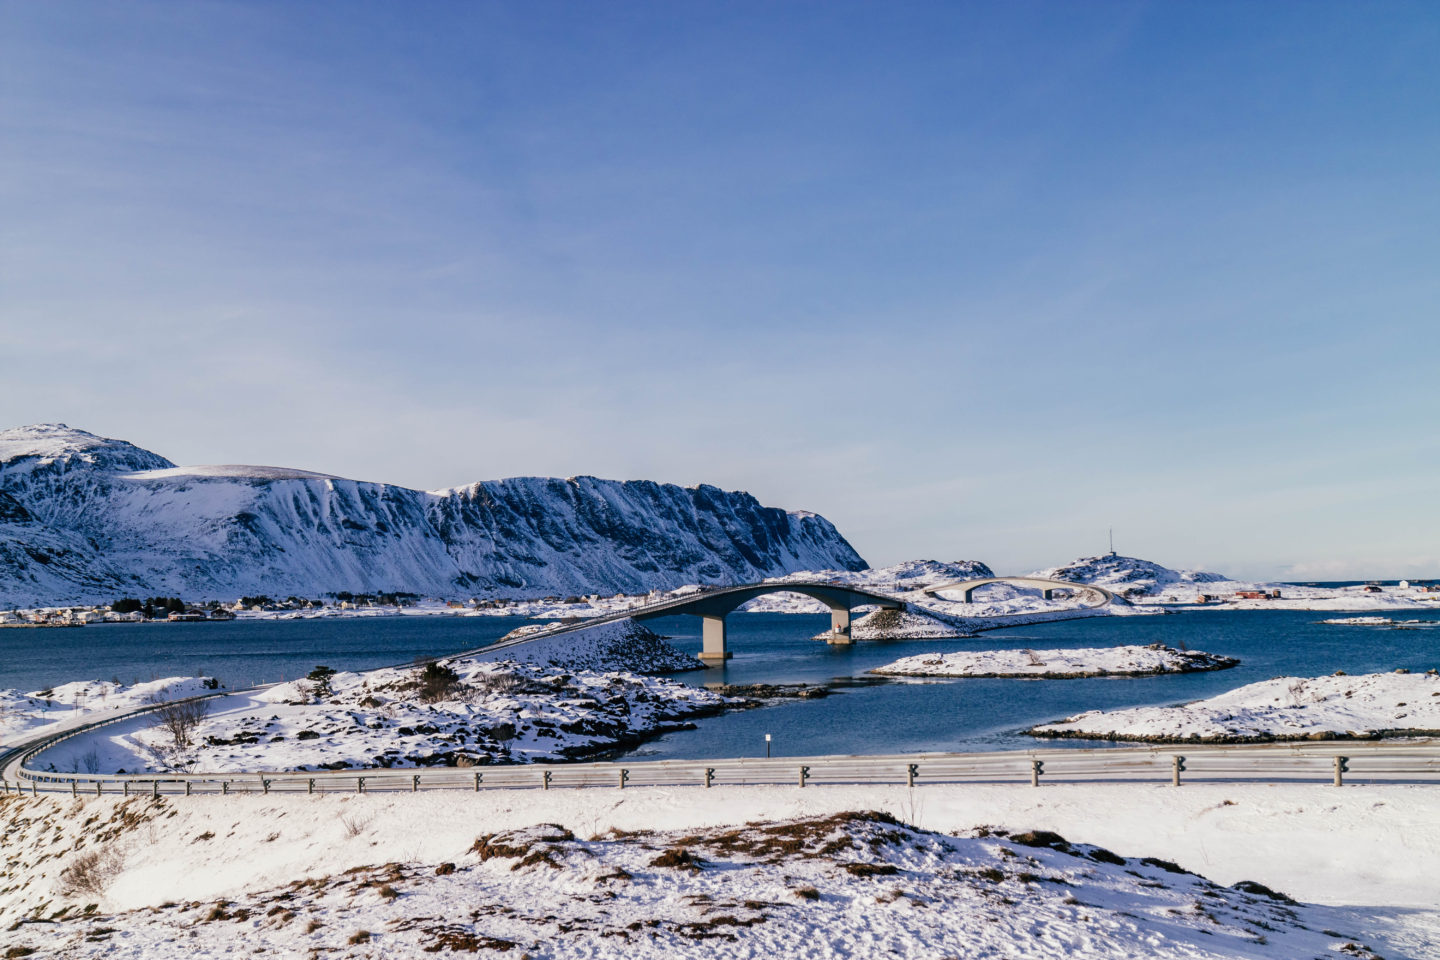 The Fredvang Bridges, Lofoten